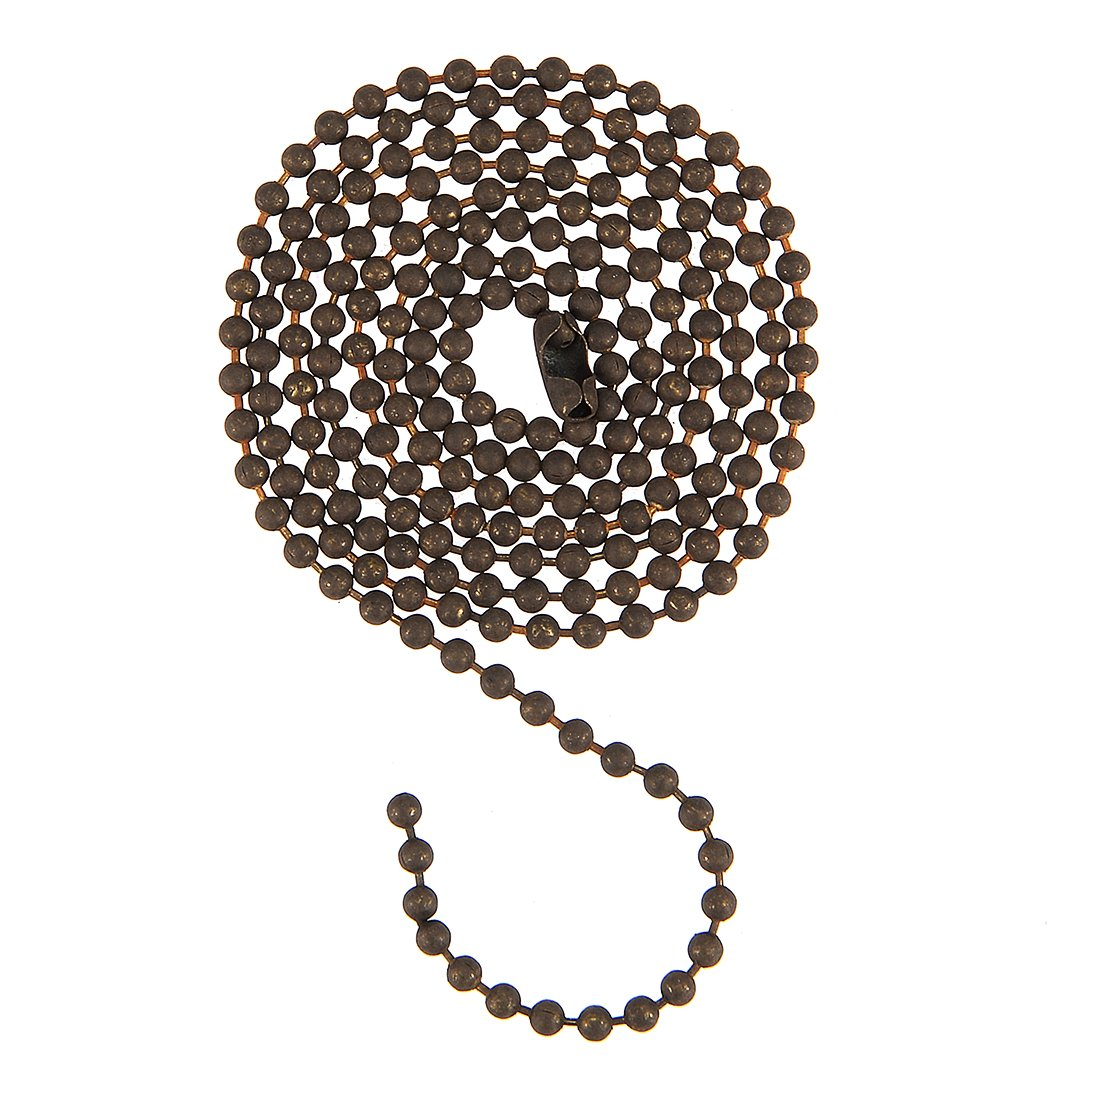 uxcell® Pull Chain Extension Ceiling Fan Beaded Chain Ornaments Stainless Steel 3 Feet Length 3mm Diameter a17082900ux0225